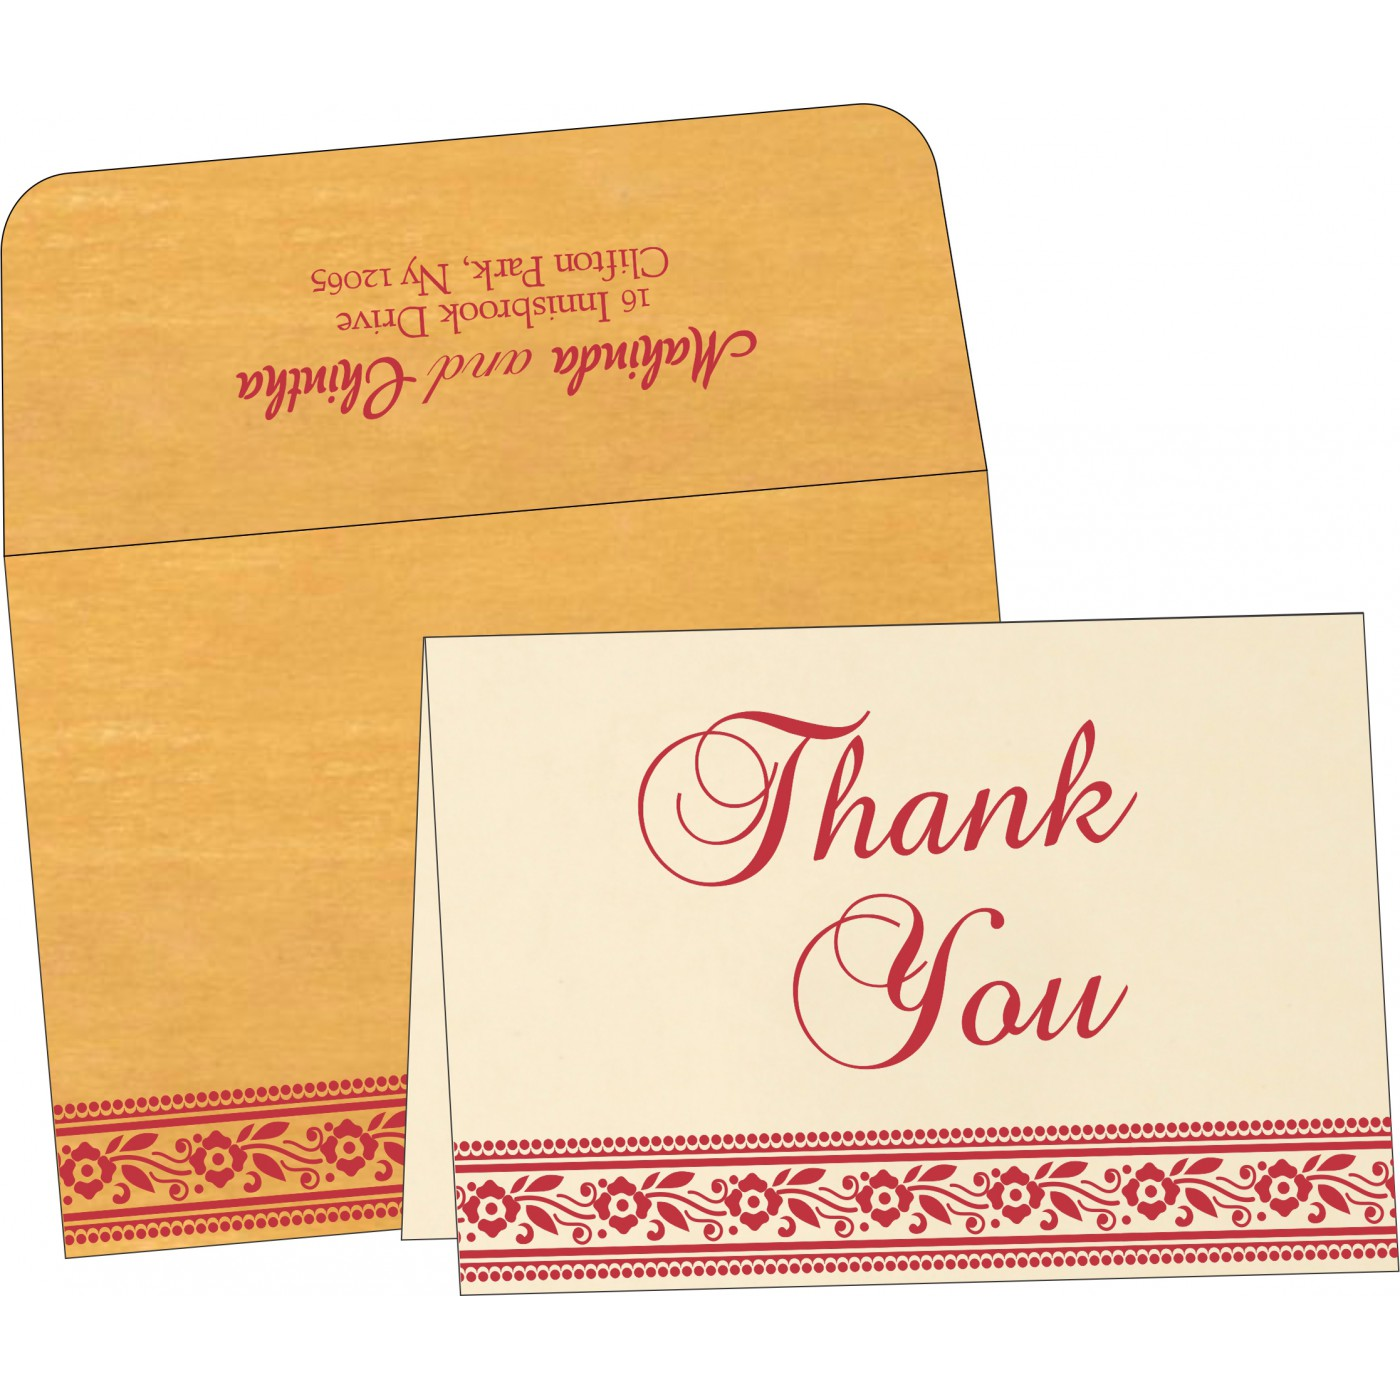 Thank You Cards - TYC-8220O